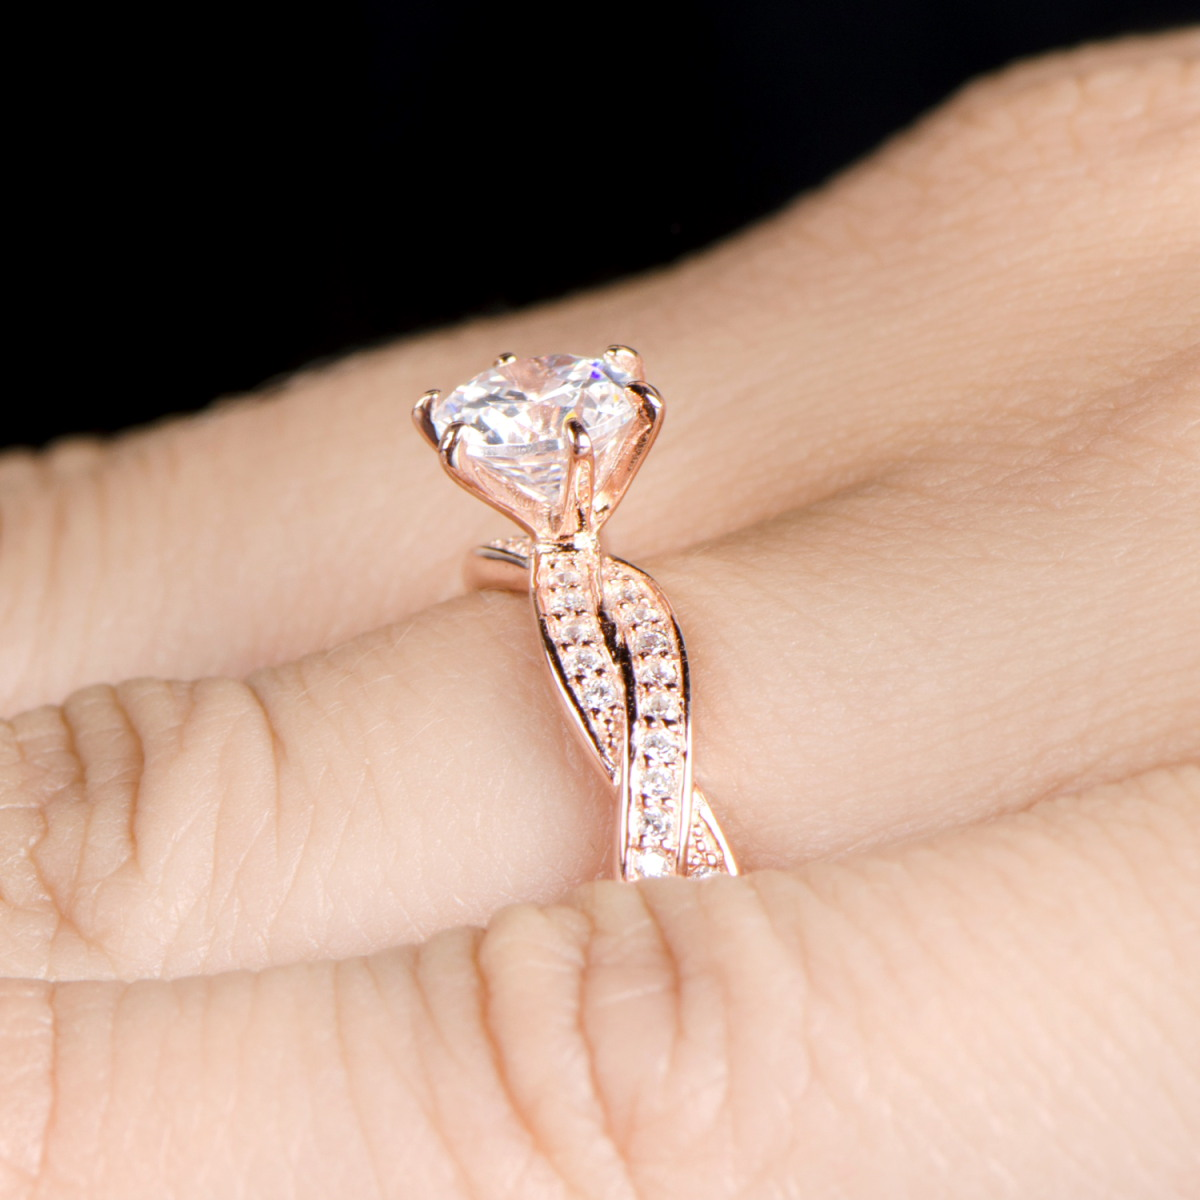 ring infinity complete engagement rings set round band wedding media gold halo rose twist diamond style